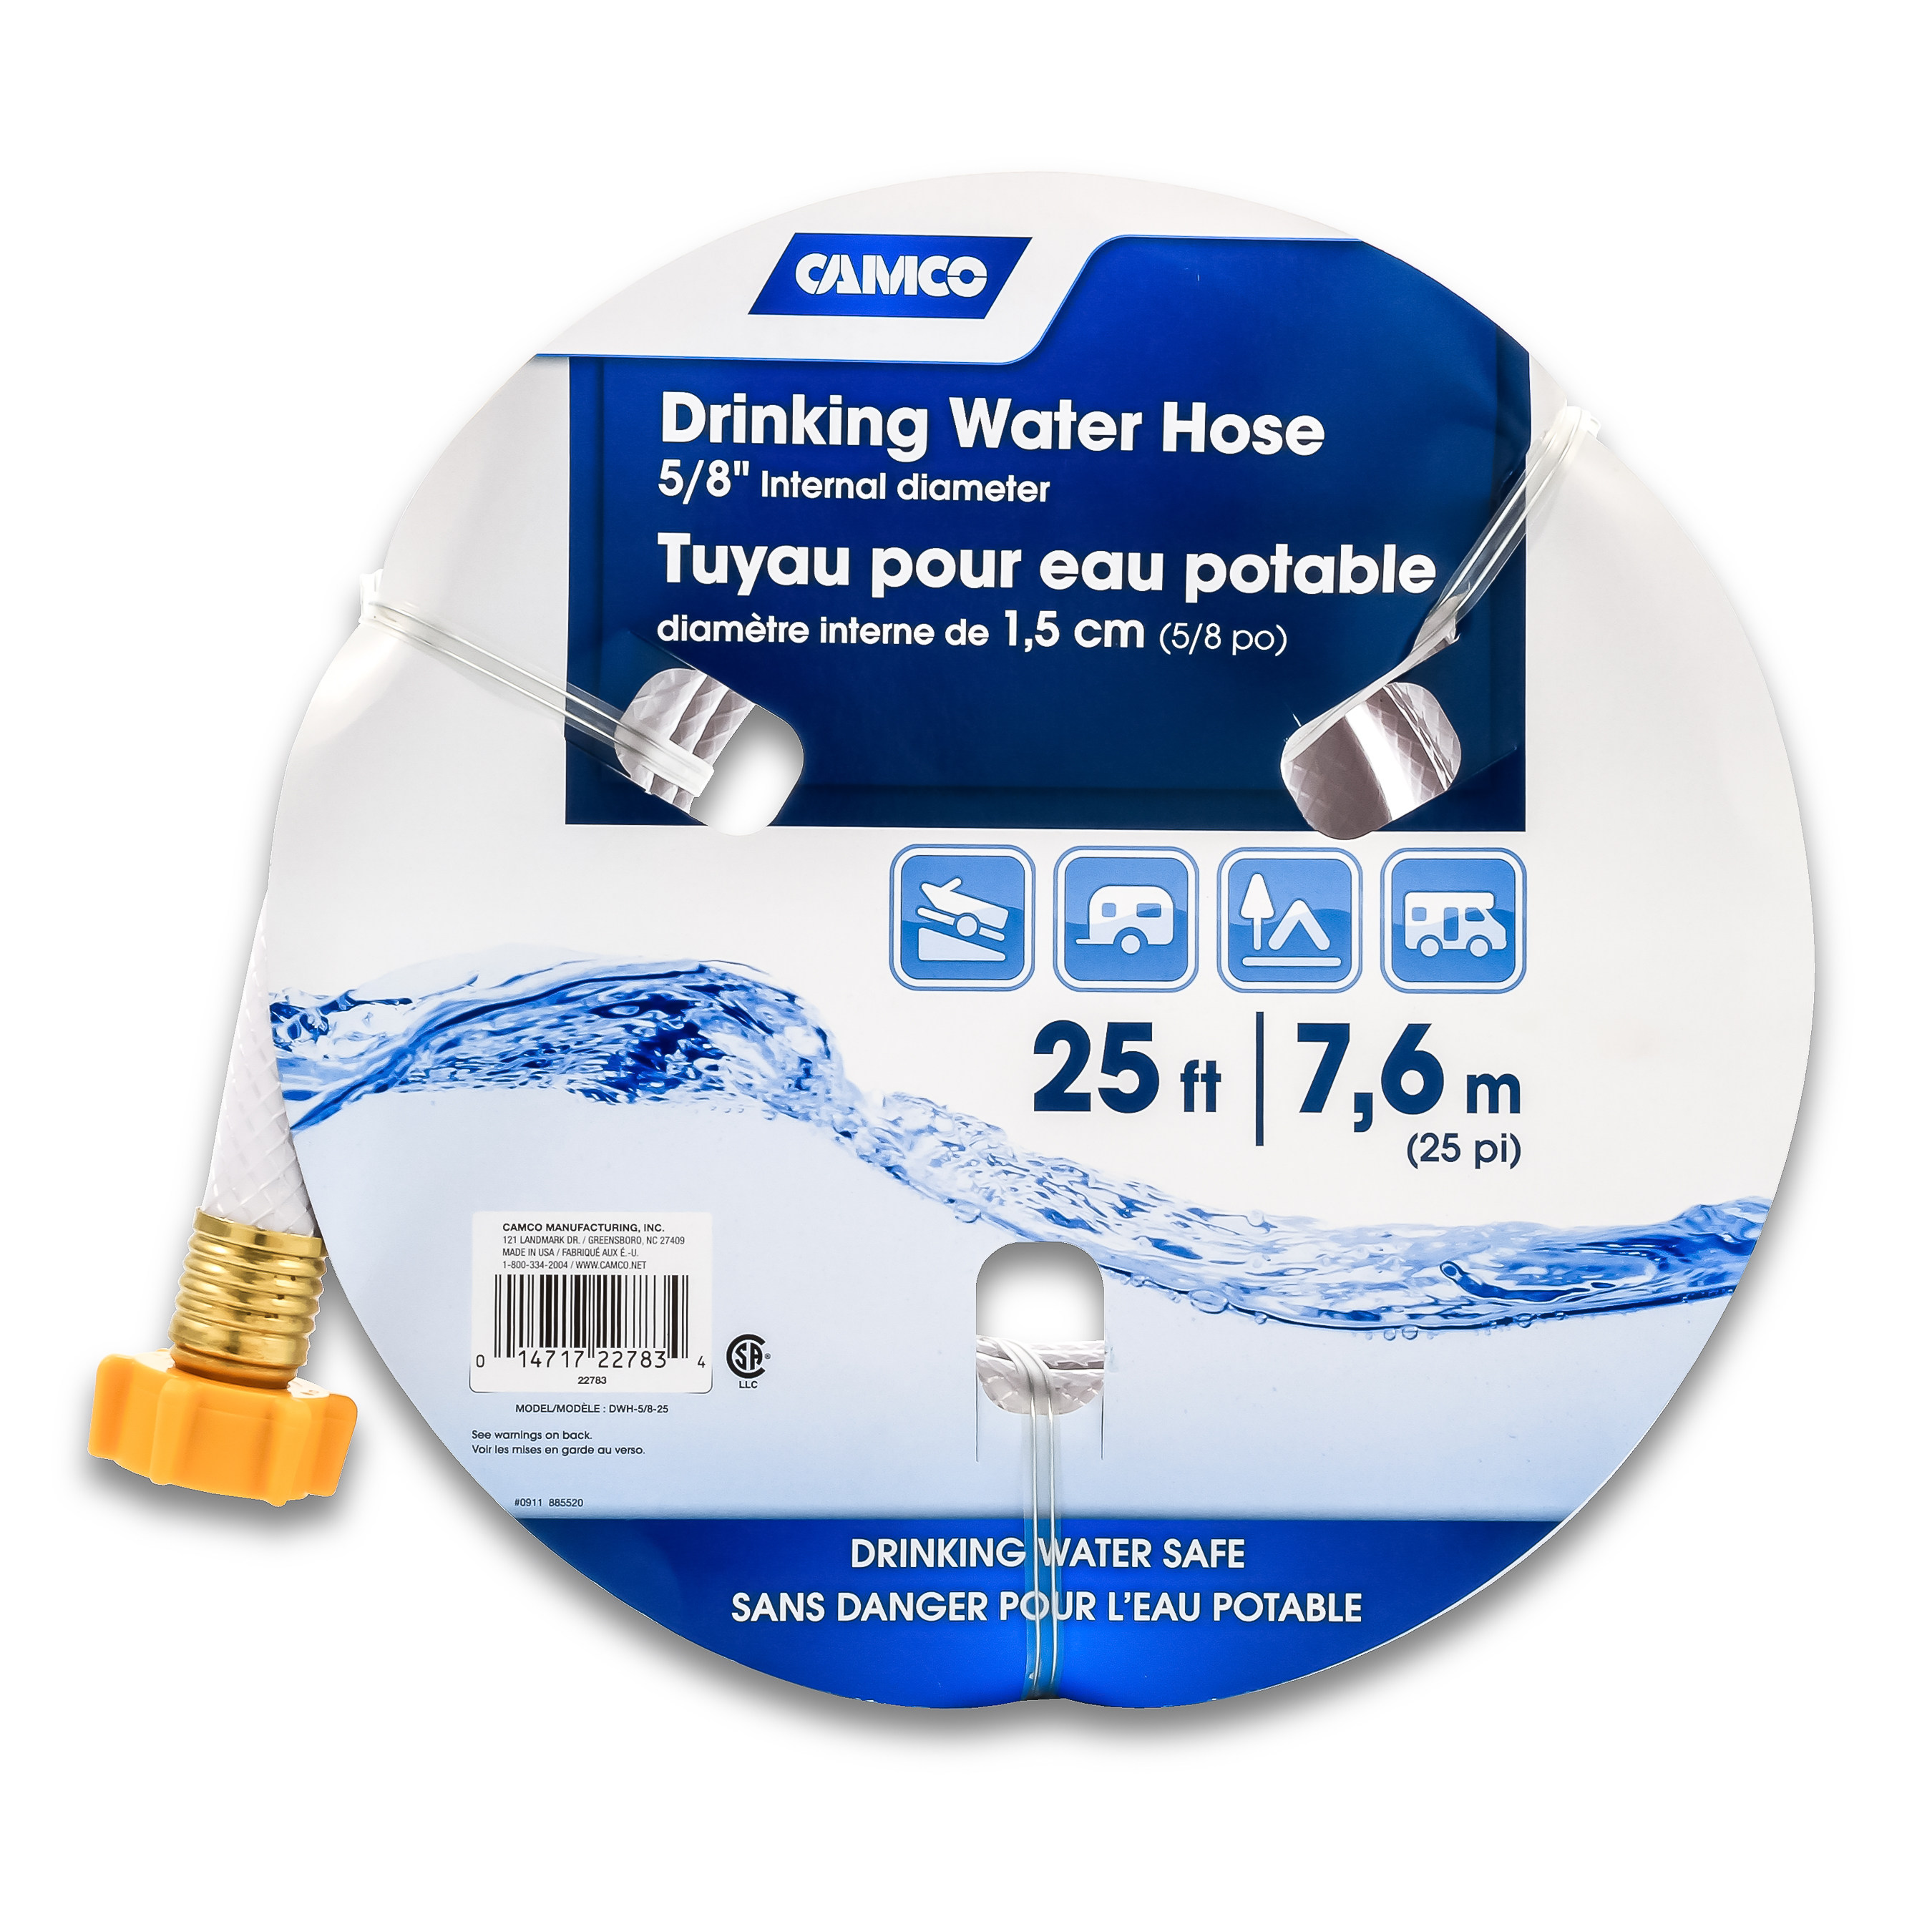 "Camco 25ft TastePURE Drinking Water Hose 22783 - Lead BPA Free, Reinforced Maximum Kink Resistance 5/8"" Inner Diameter"